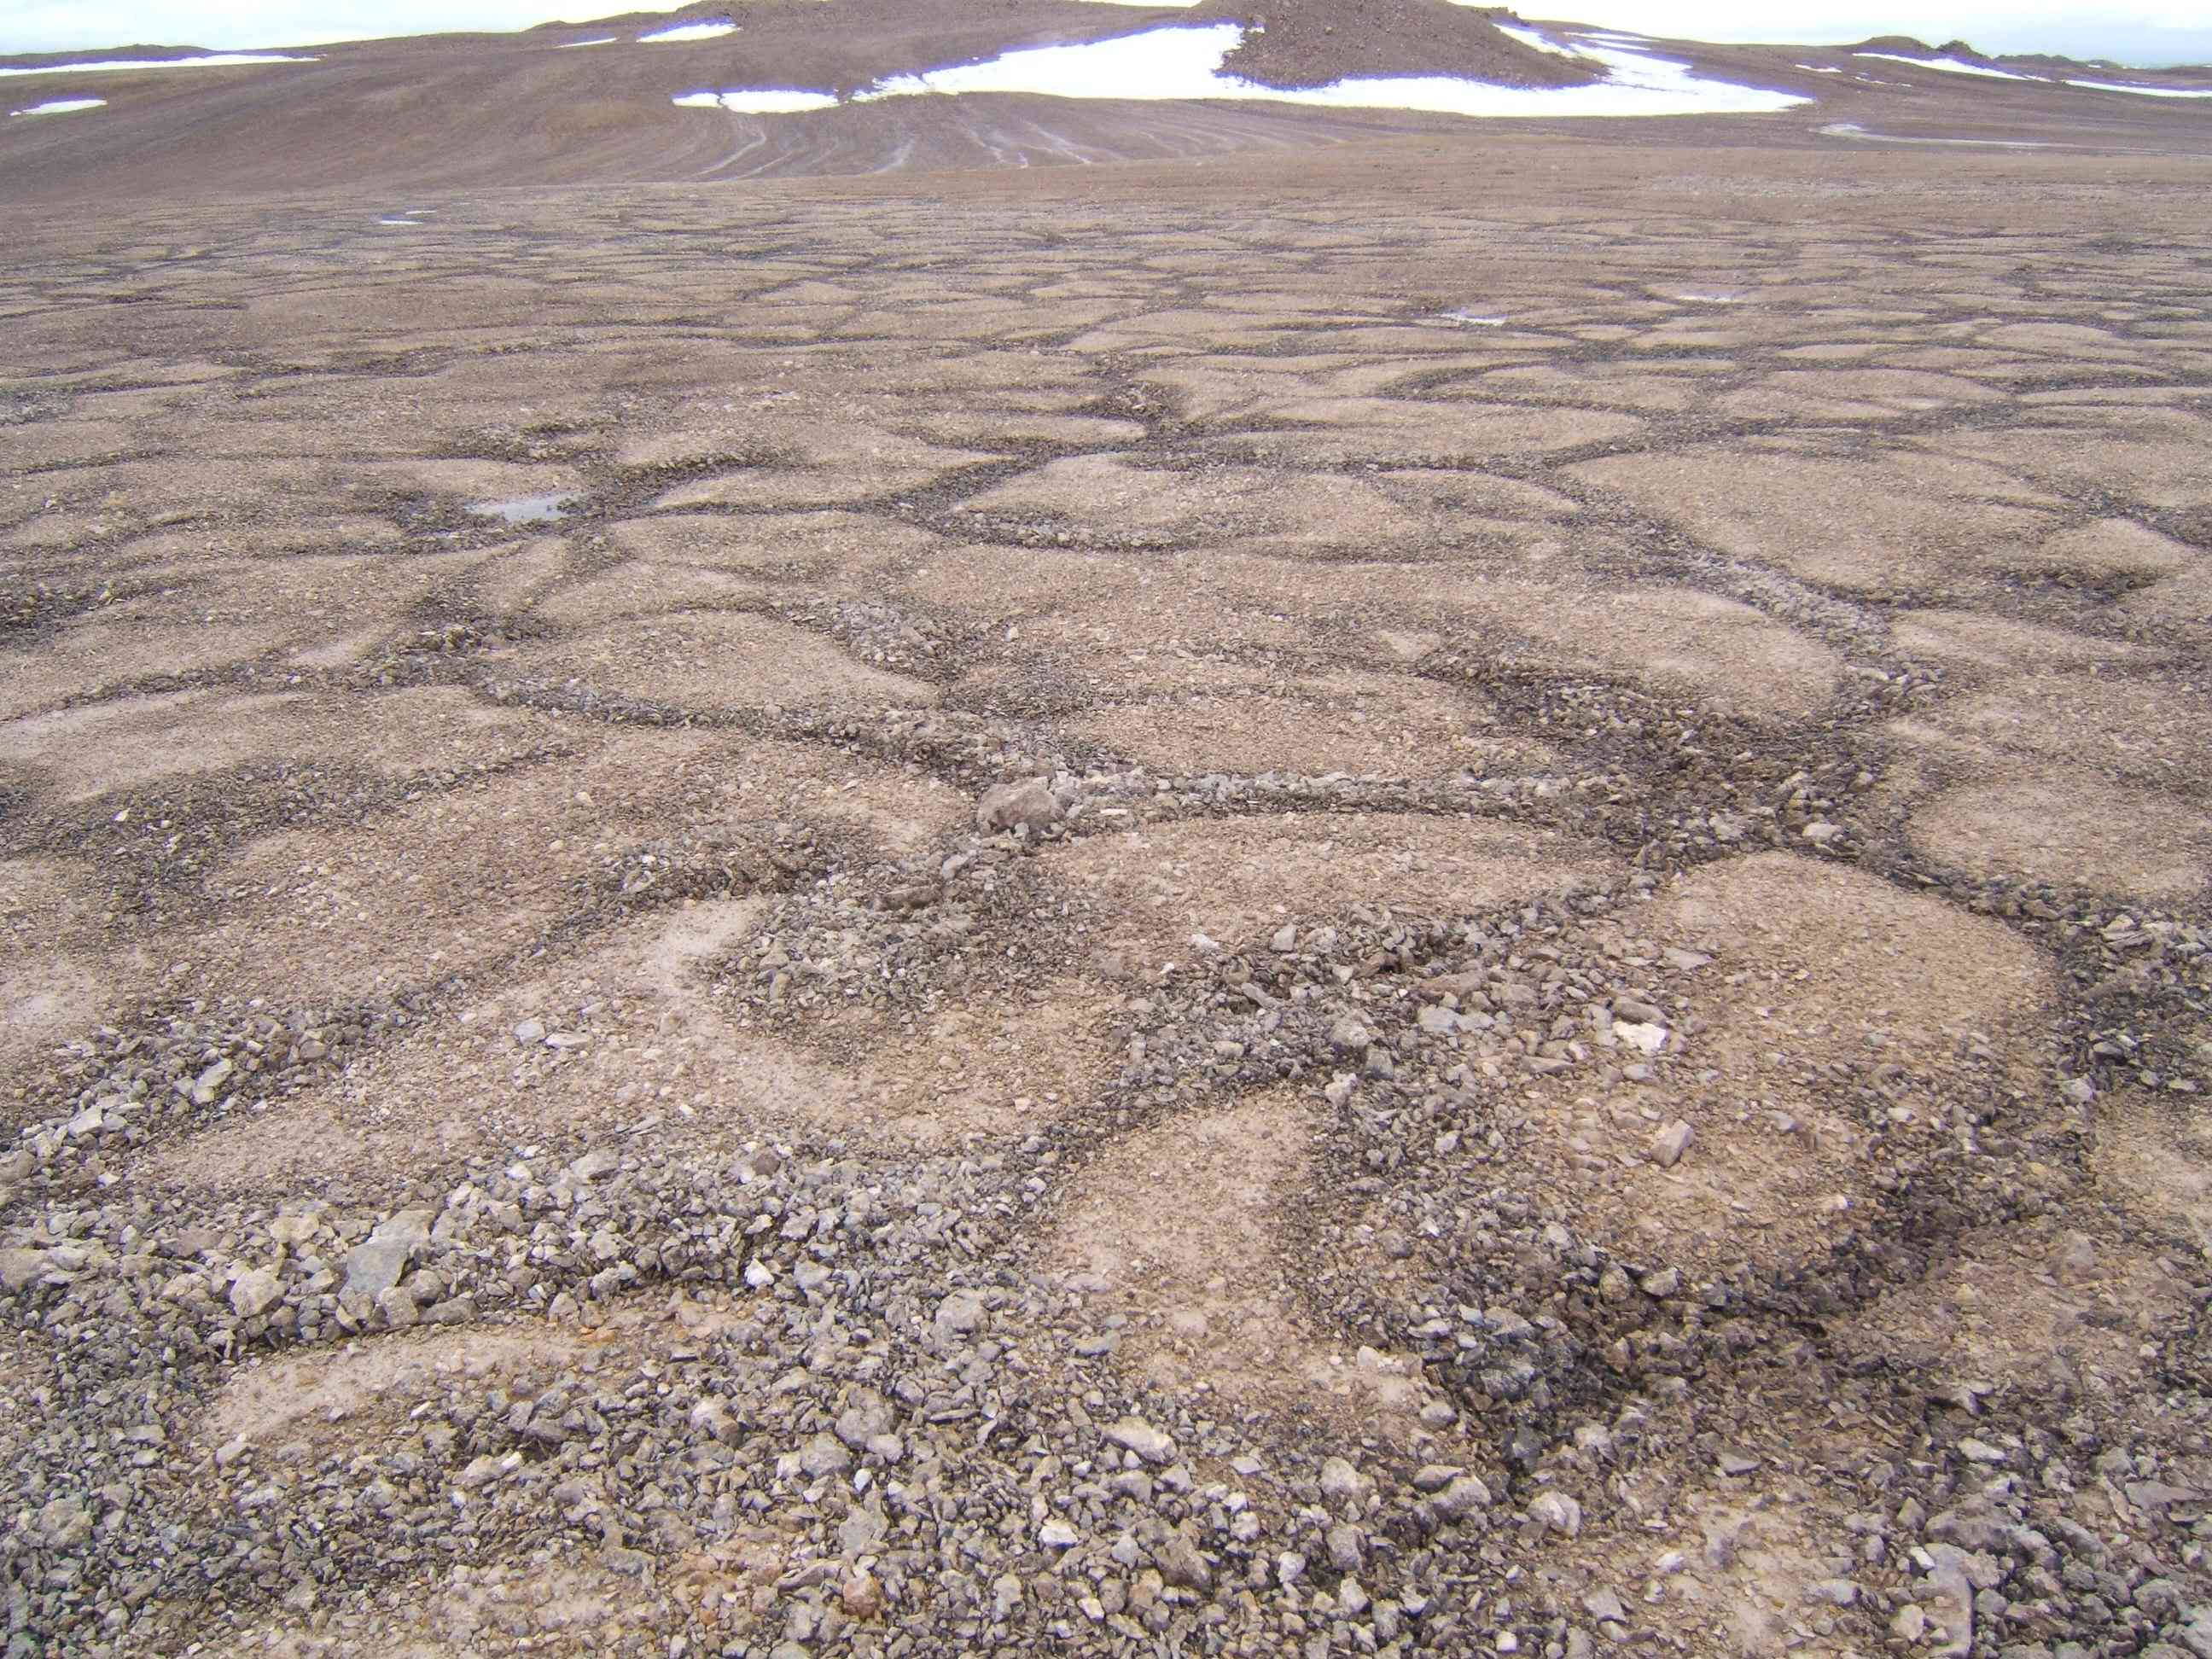 Devon Island's patterned grooves bare a passing resemblance to Mars's surface